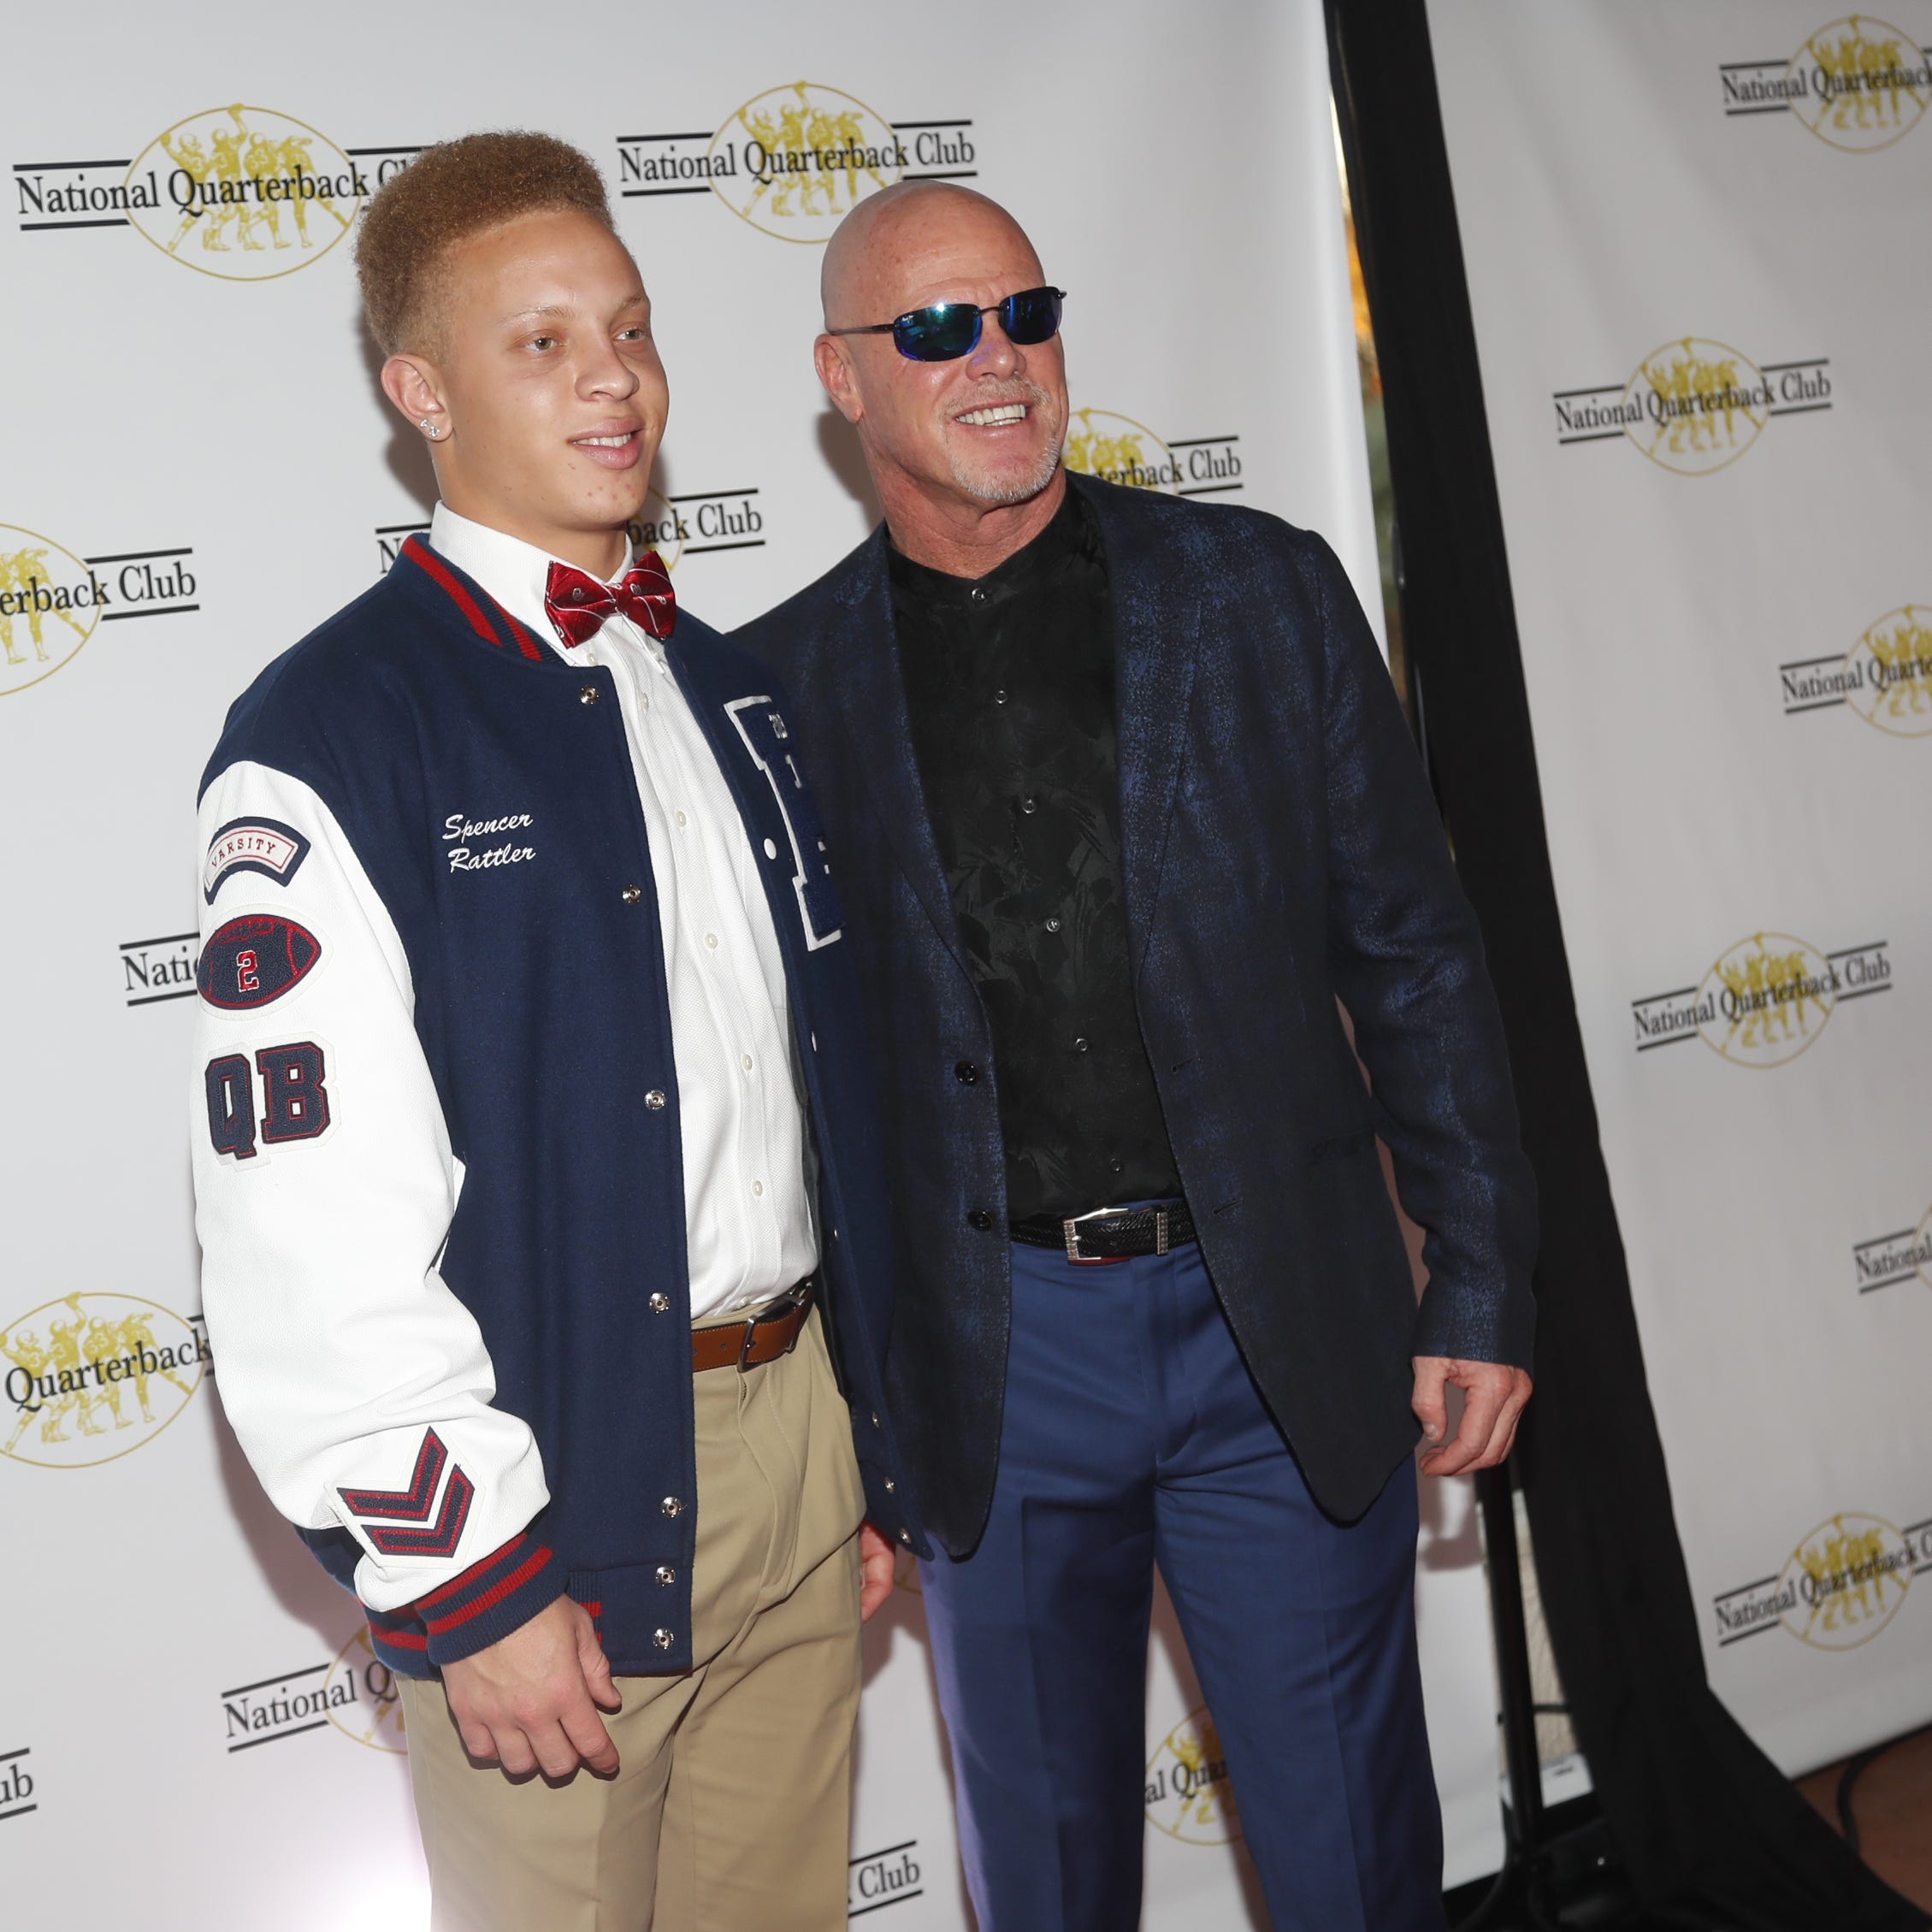 Future Oklahoma teammates Spencer Rattler, Jalen Hurts accept awards at National Quarterbacks Club Awards in Scottsdale